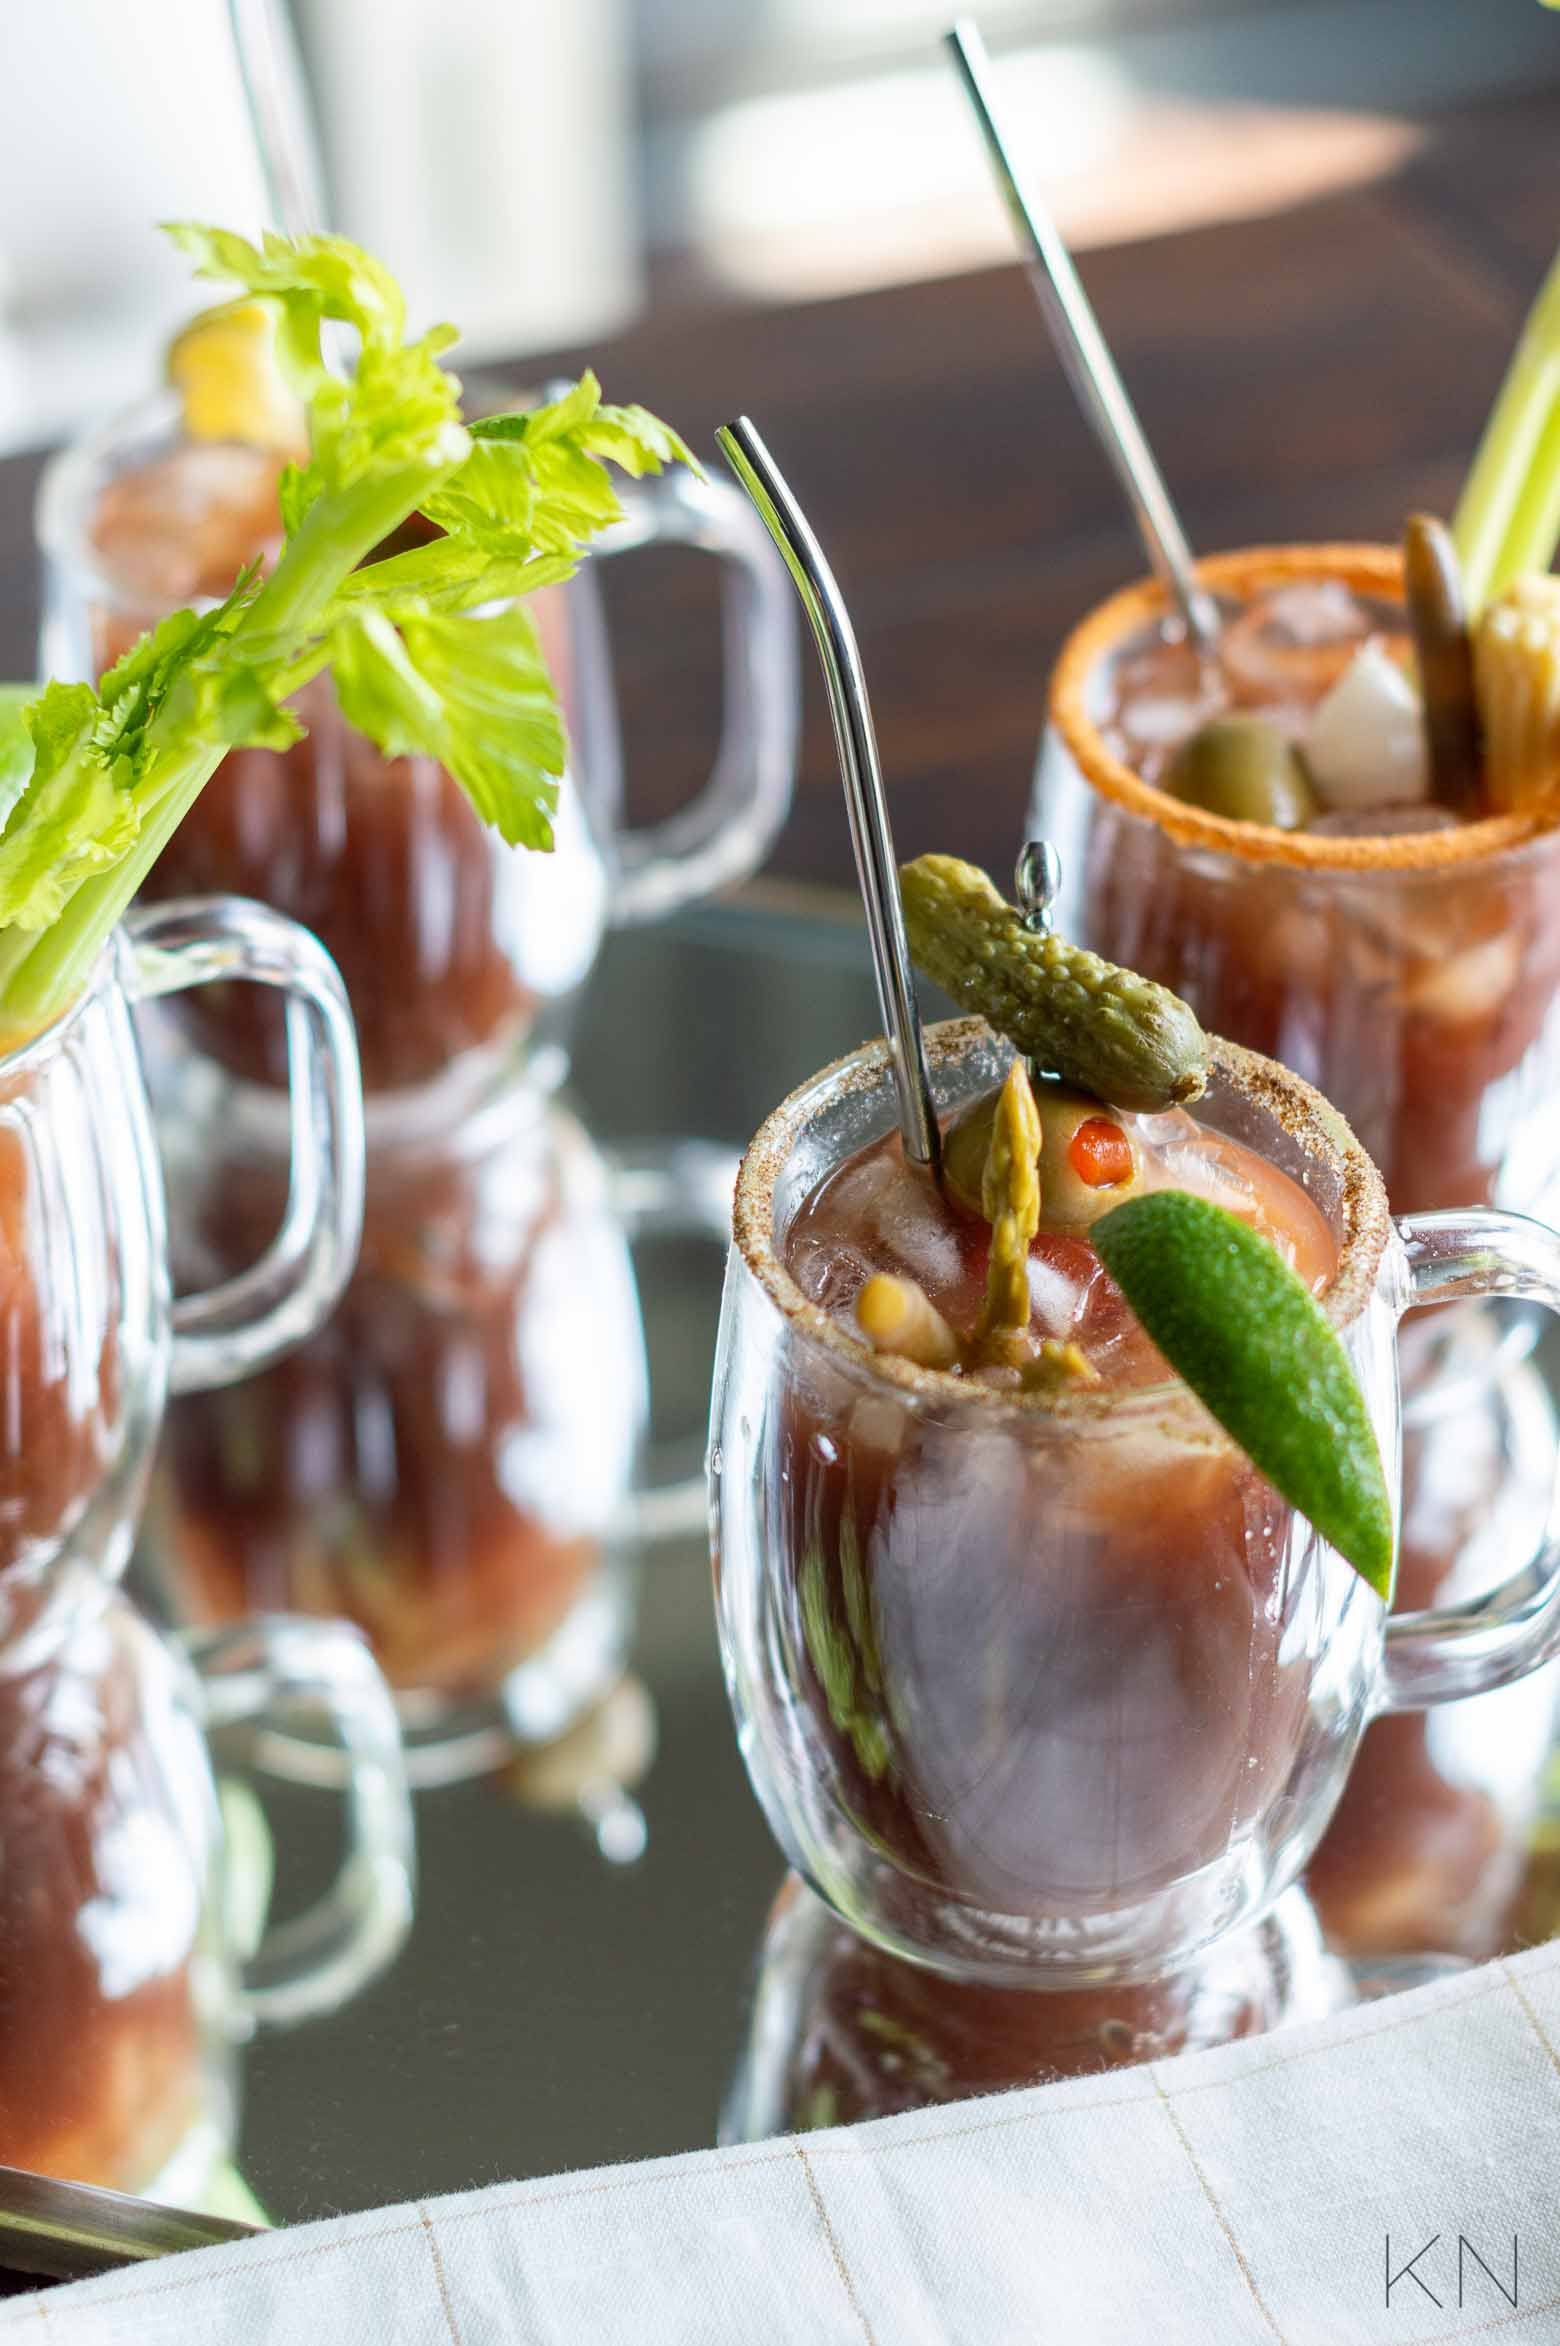 TONS of Bloody Mary Garnish Ideas to Create the Yummiest, Best Bloody Marys